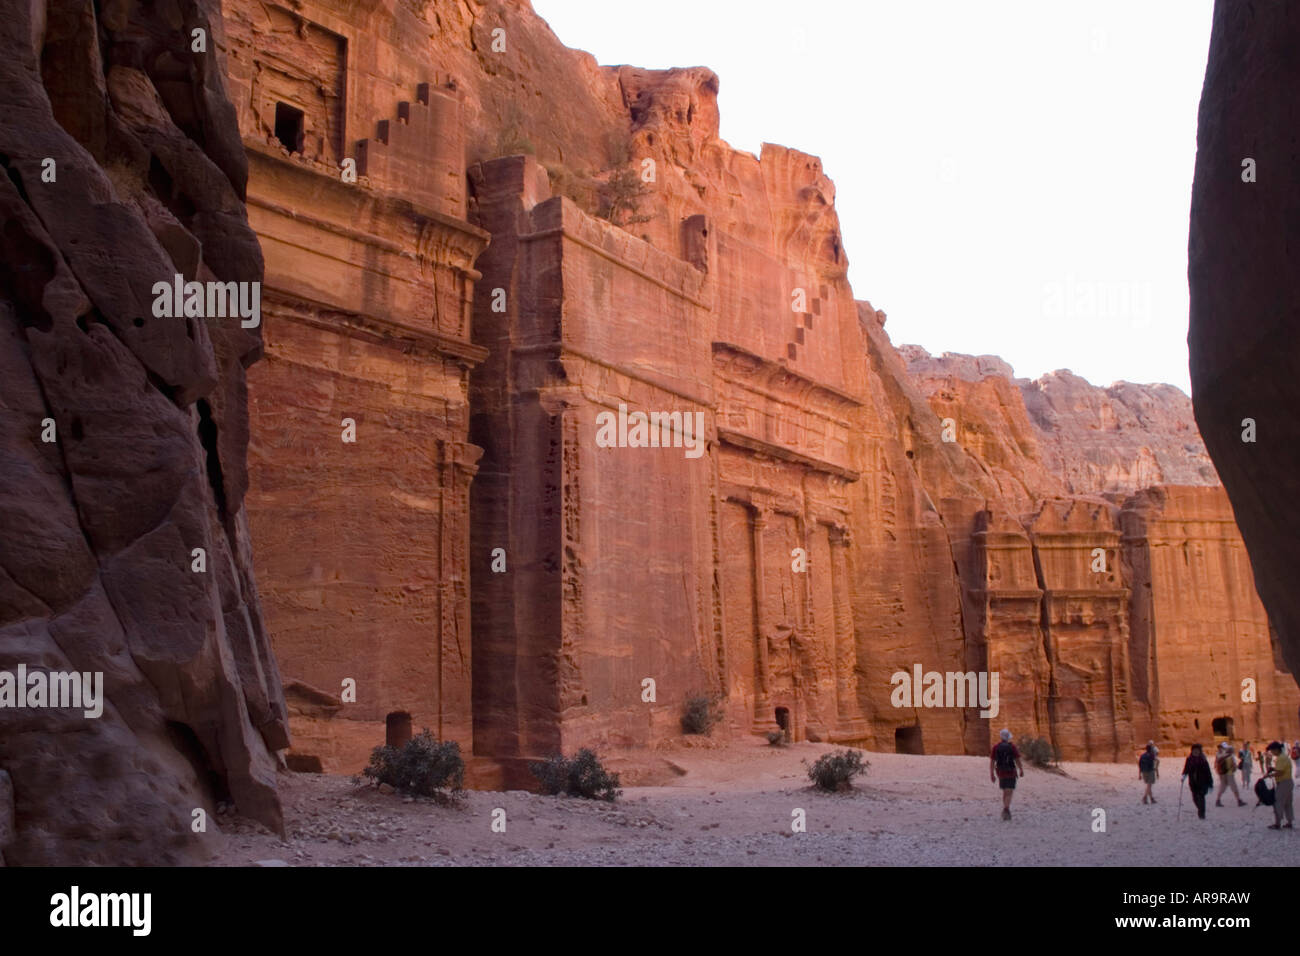 Siq Esterno Petra Jordan Stock Photo Royalty Free Image